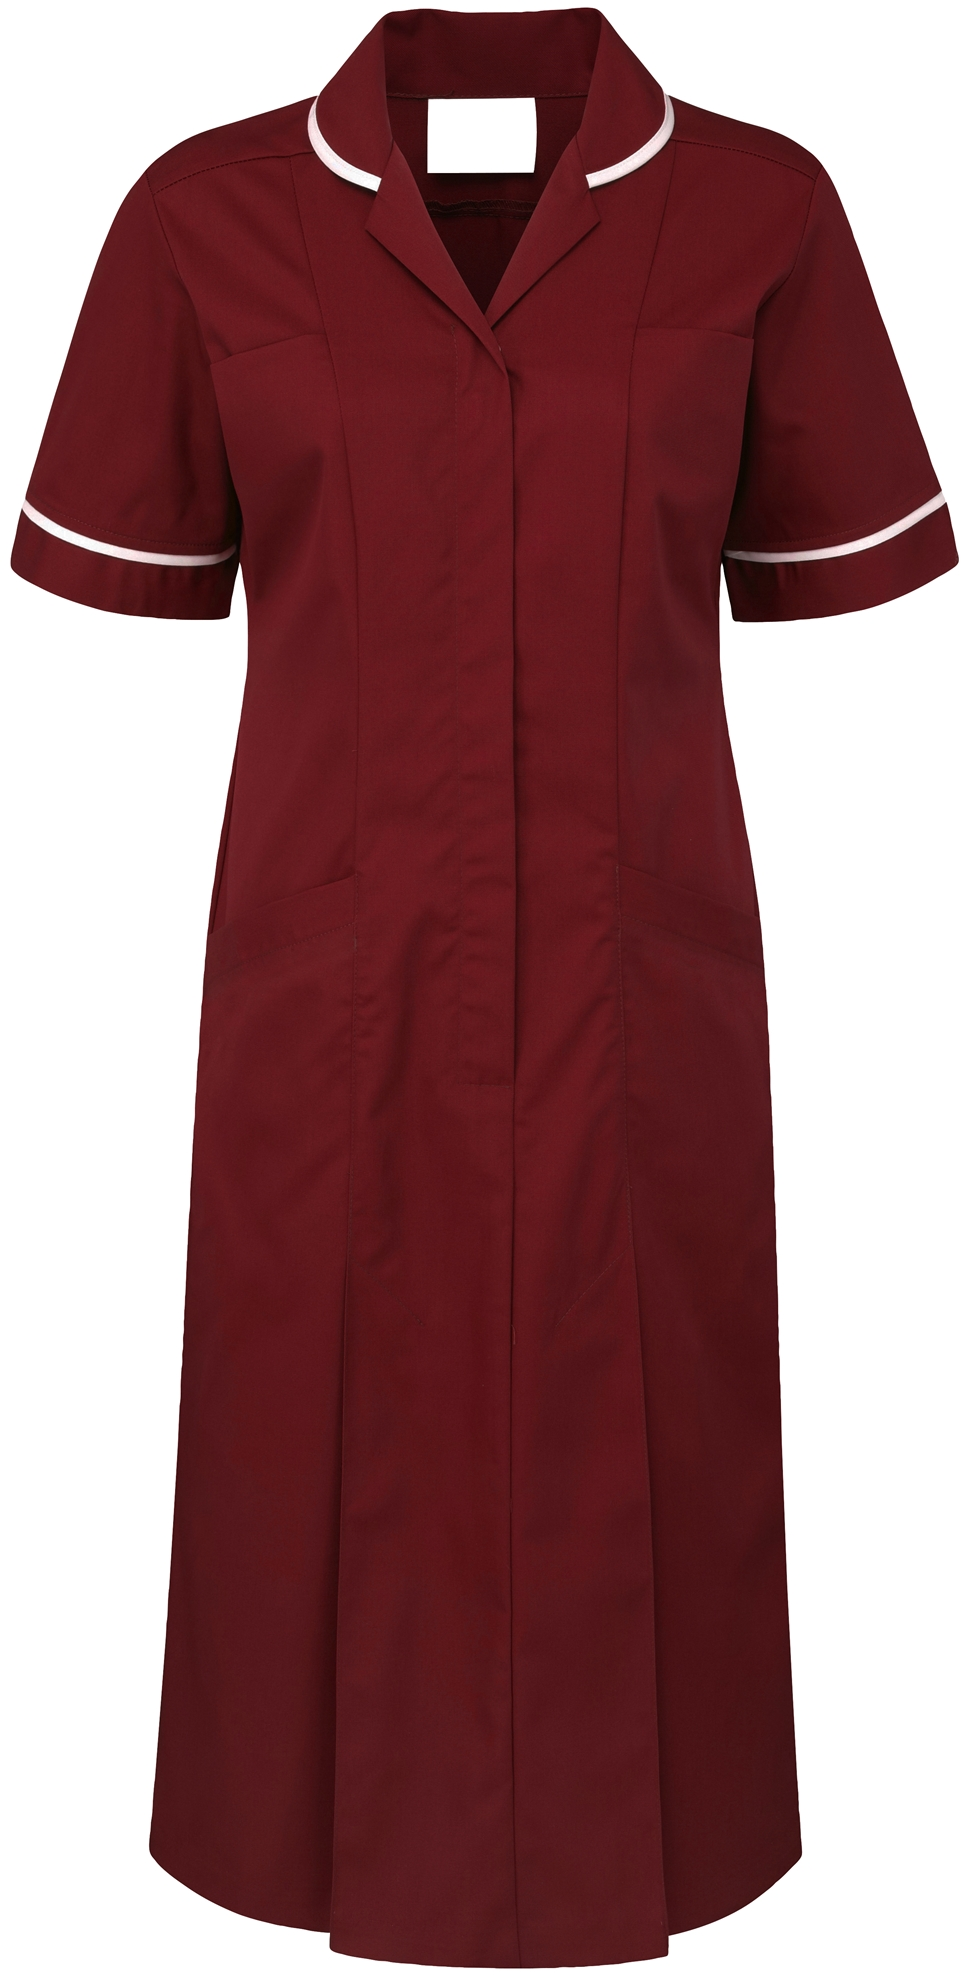 Picture of Plain Colour Dress - Burgundy/White